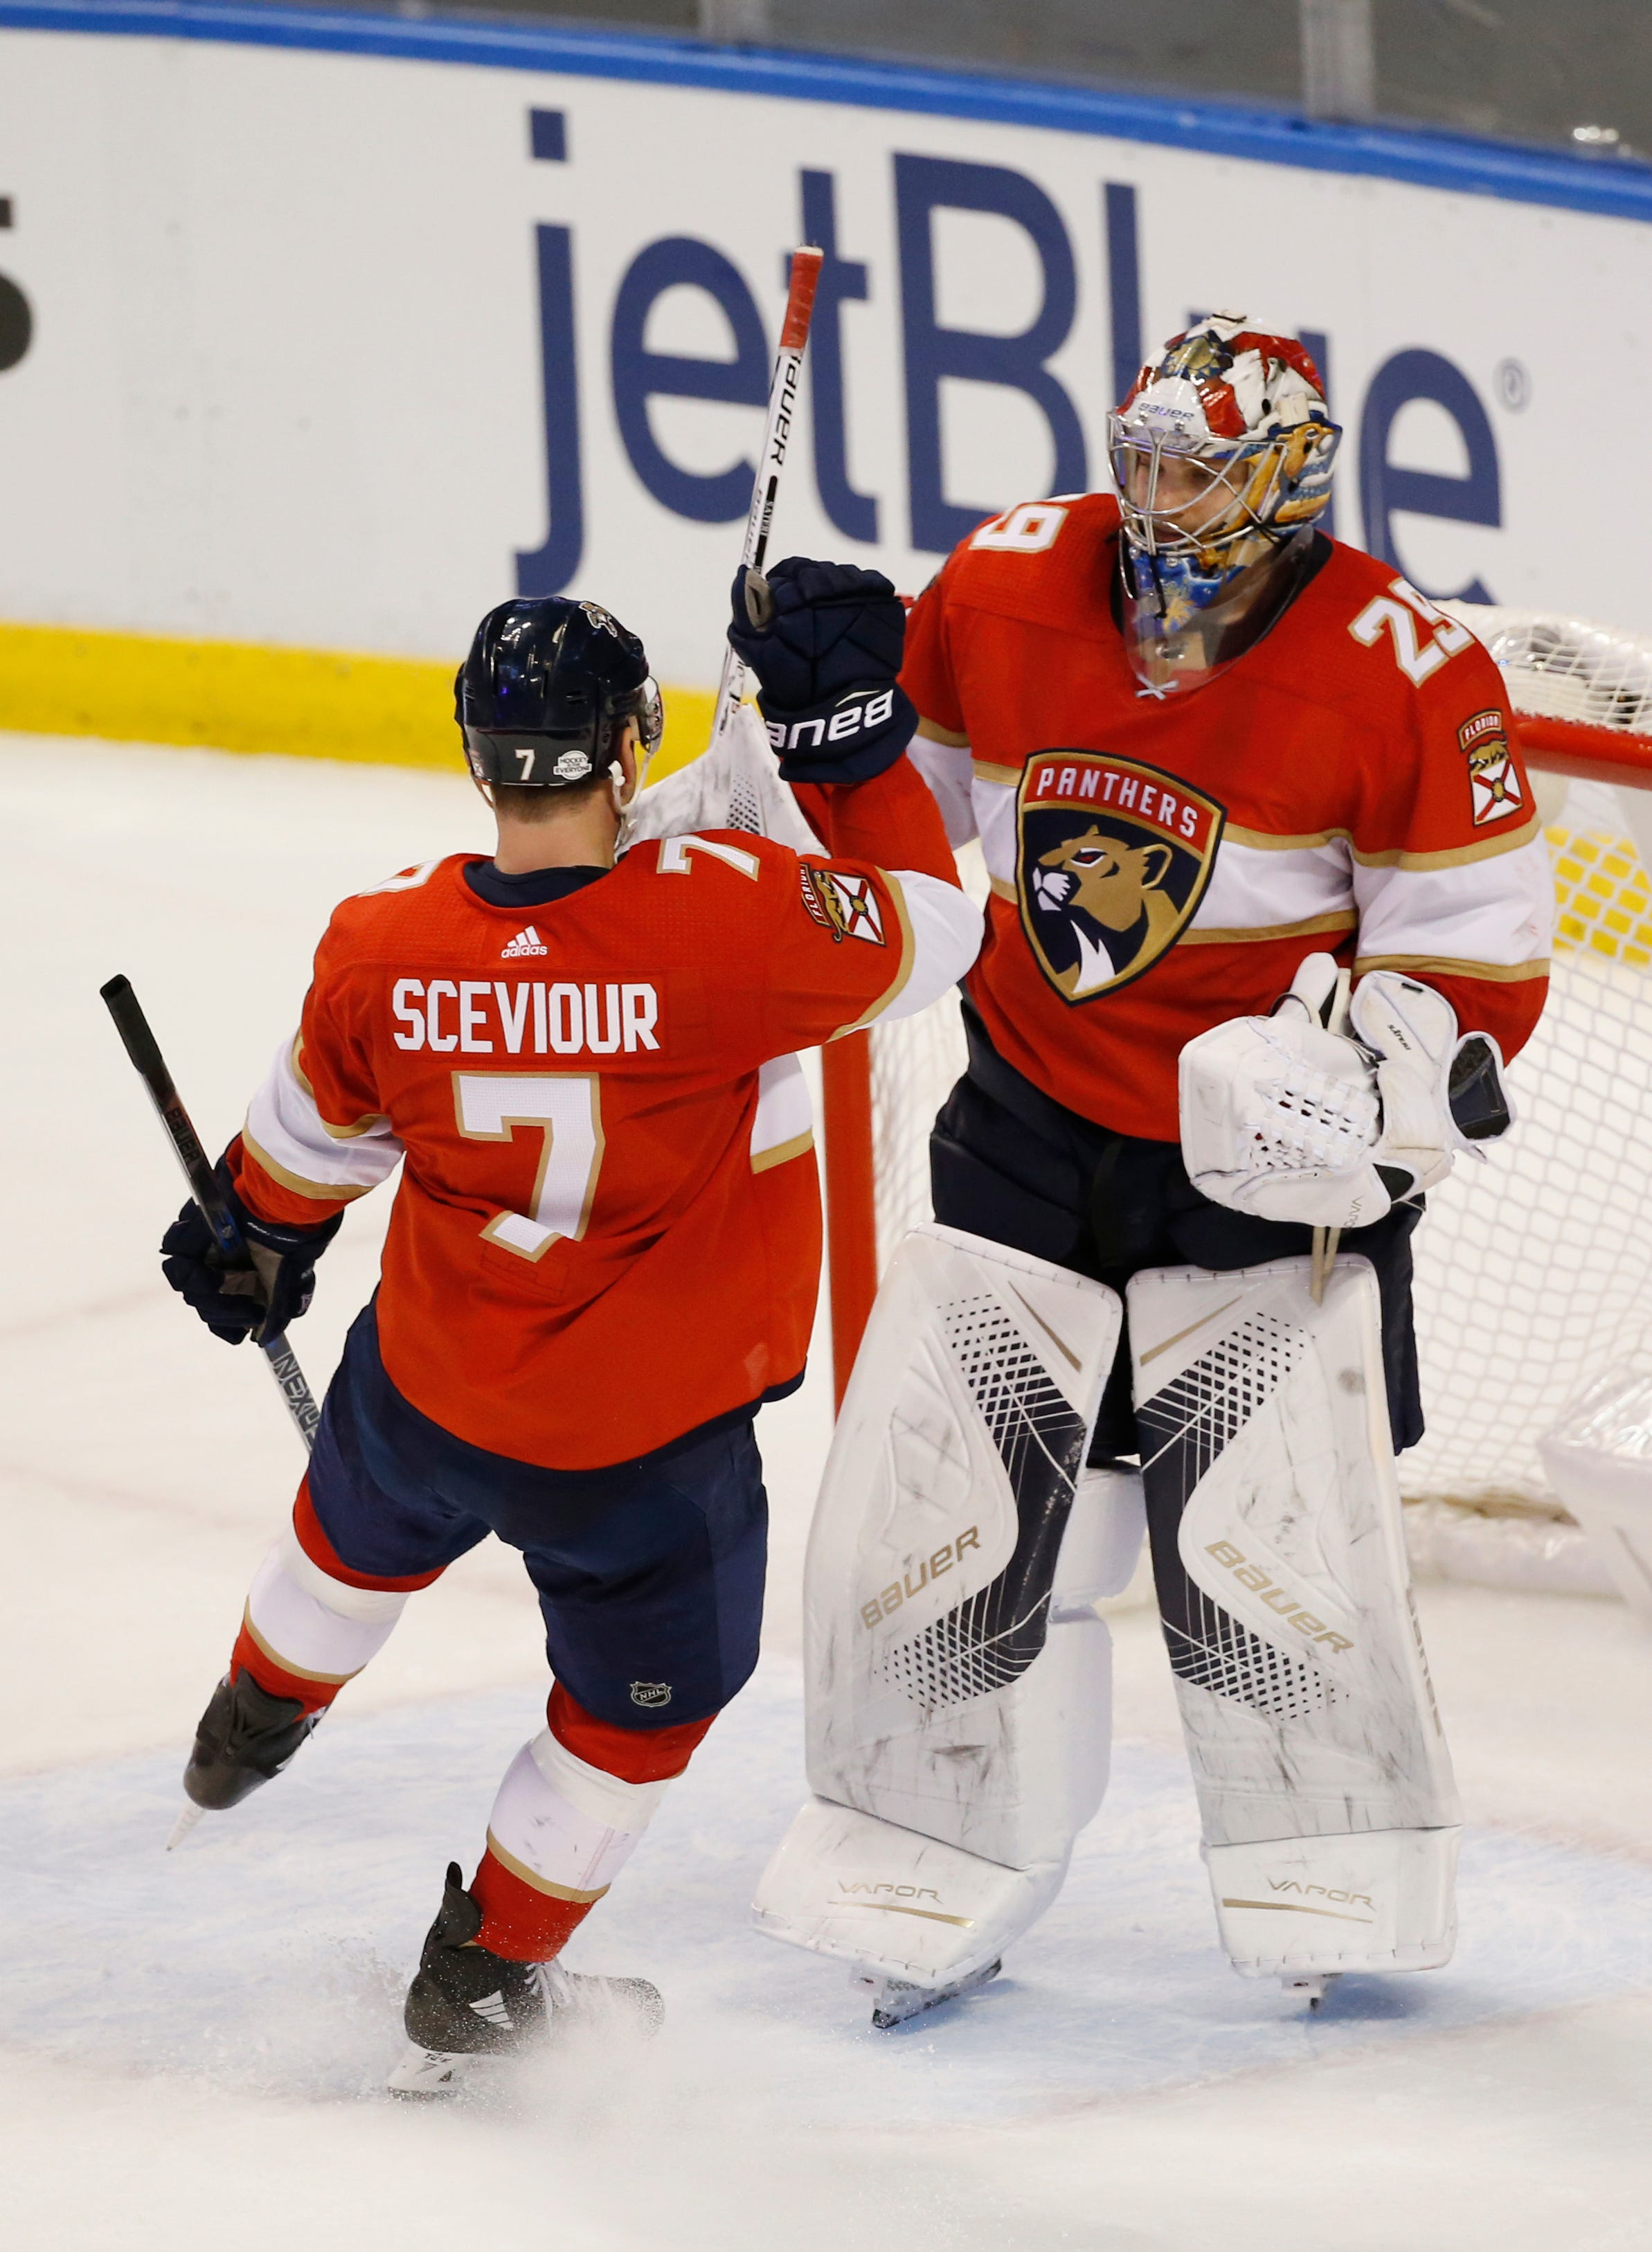 Barkov scores twice to help Panthers beat Canucks 3-1